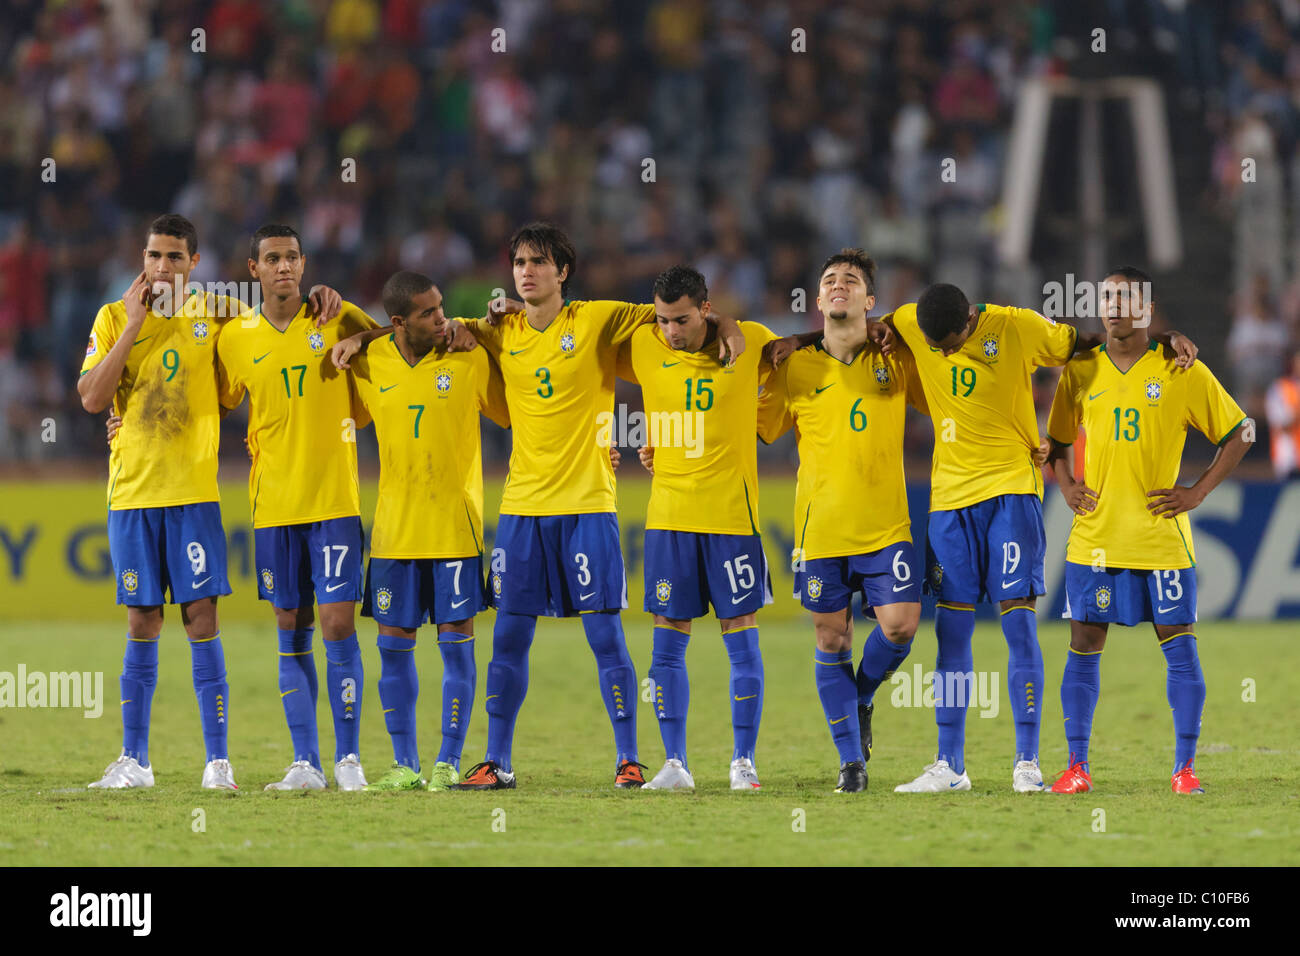 5302215ae10 Brazil players line up for penalty kicks against Ghana to determine the  2009 FIFA U-